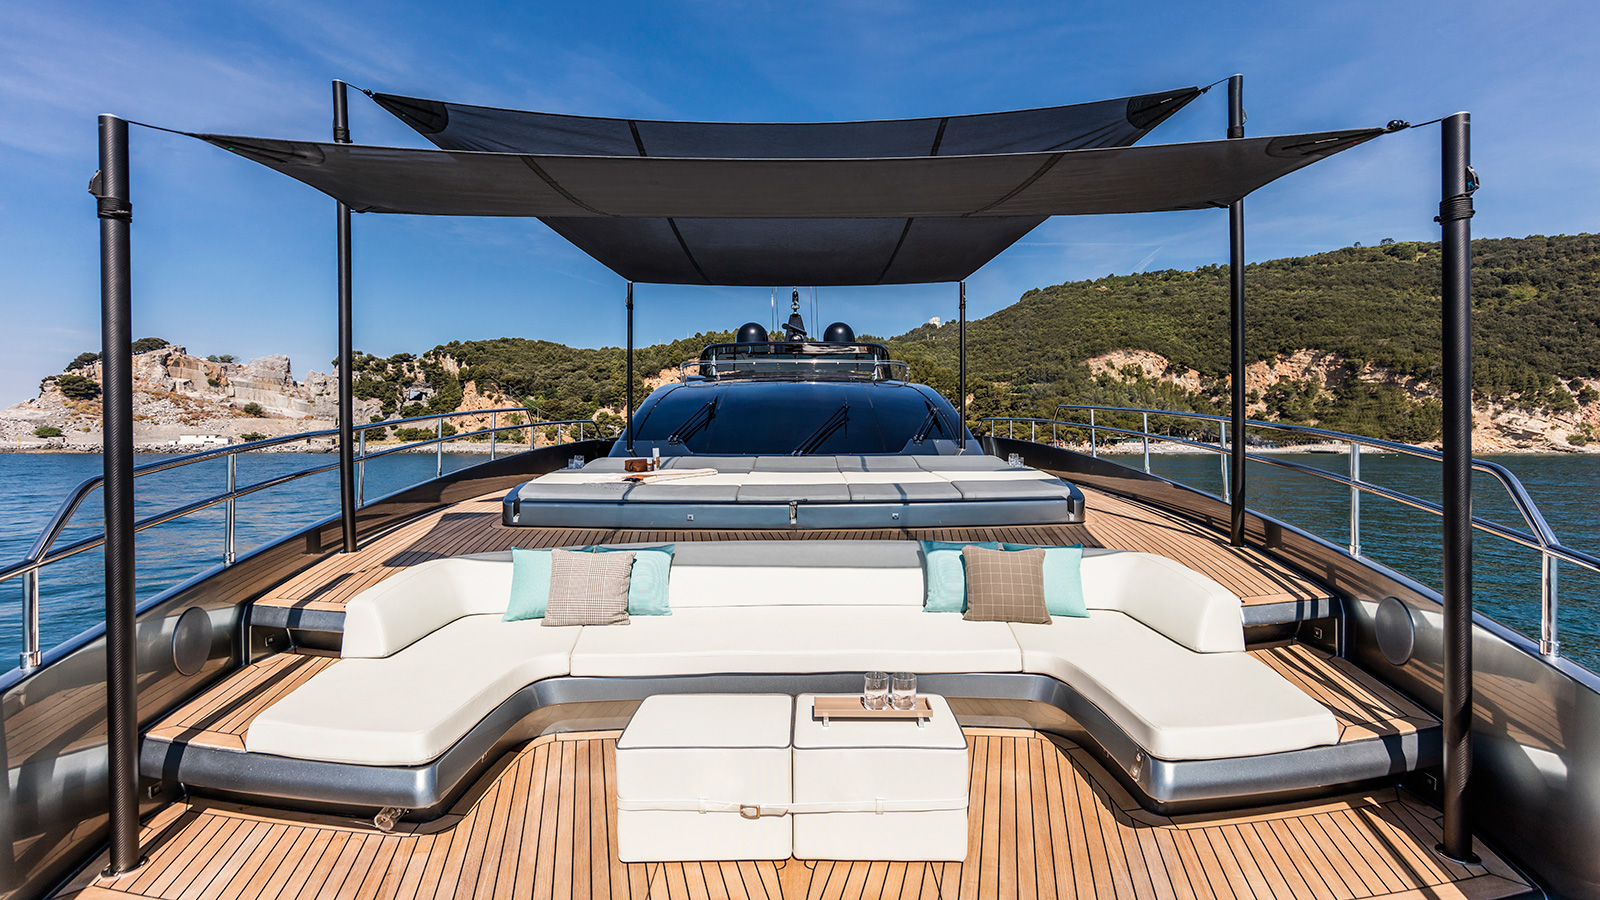 the-foredeck-of-the-riva-100-corsaro-yacht-wild-one-credit-alberto-cocchi